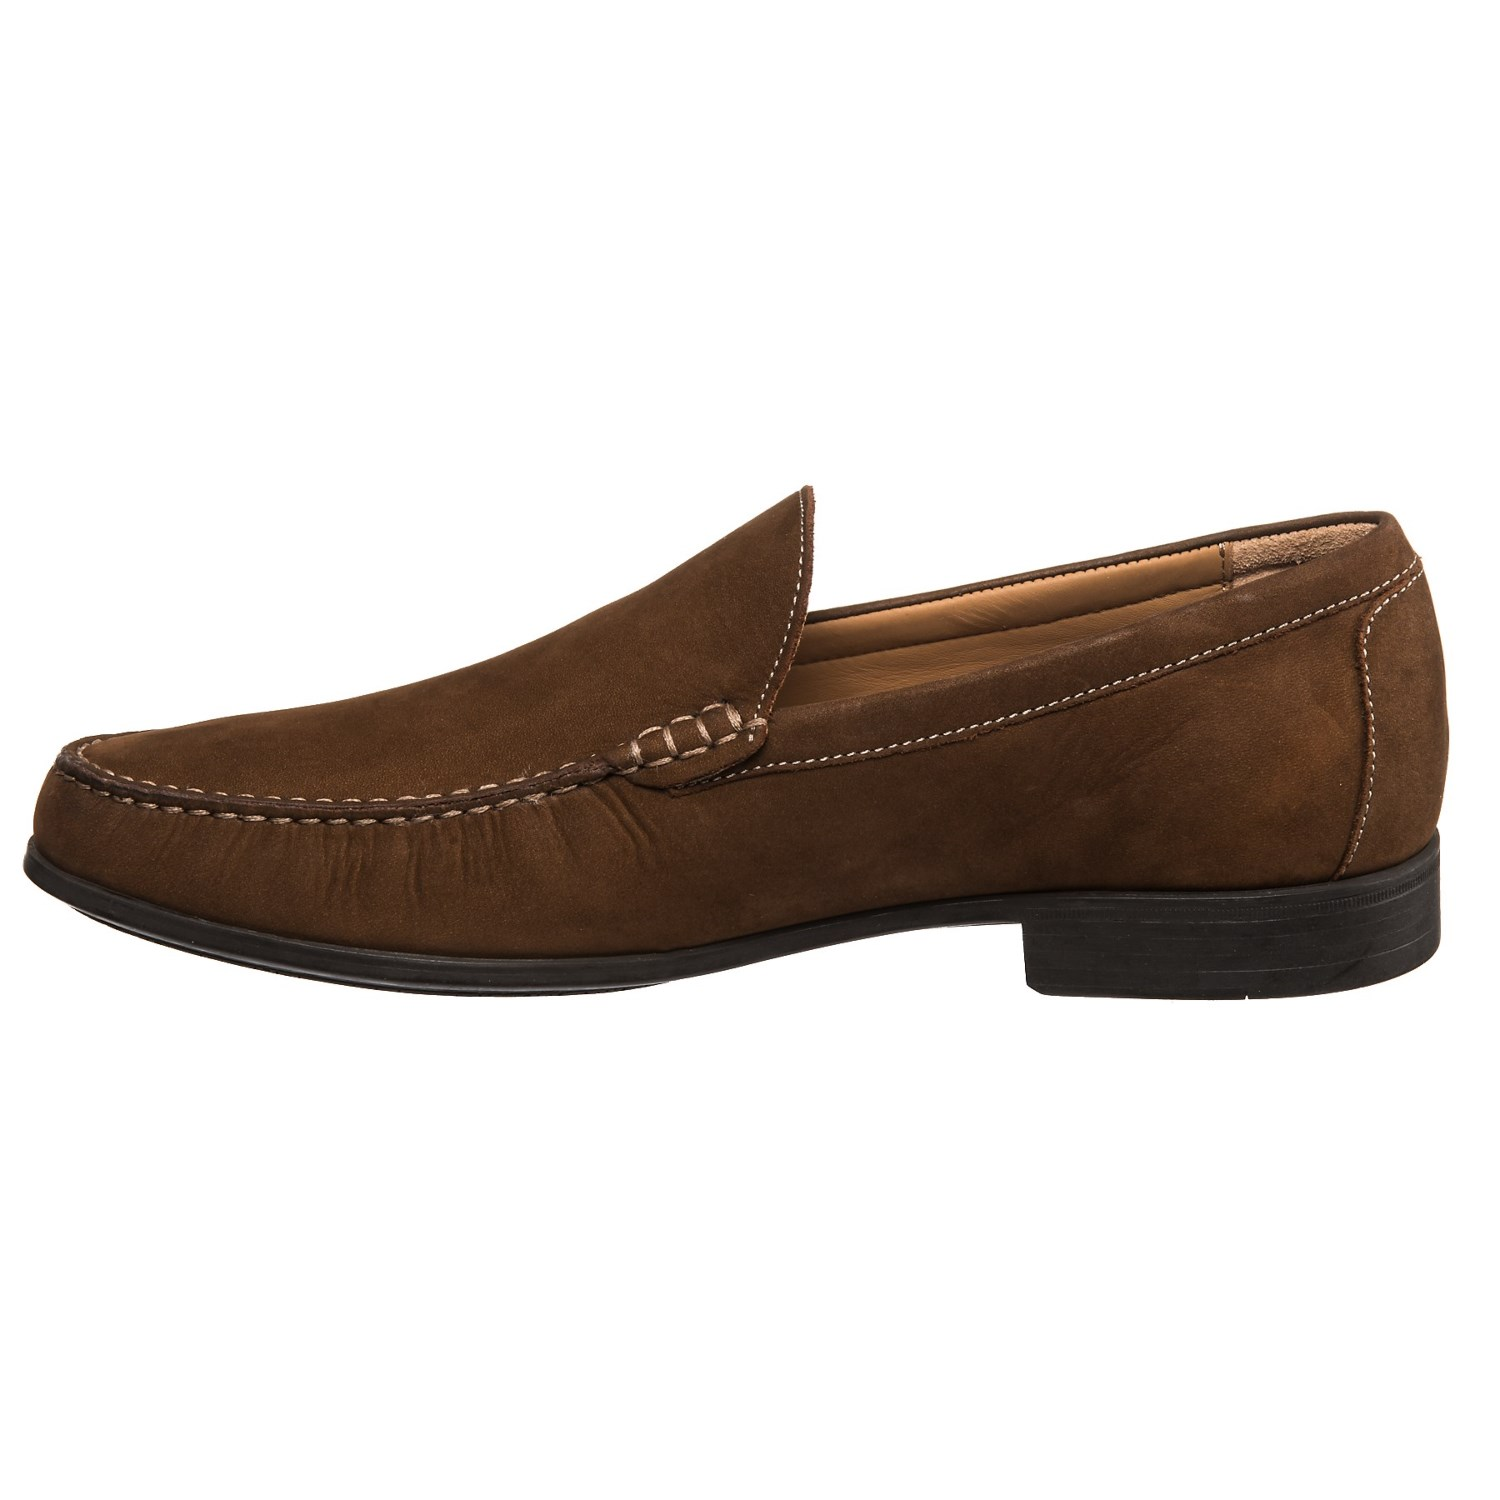 Johnston & Murphy Cresswell Venetian Slip-on o1RmZt